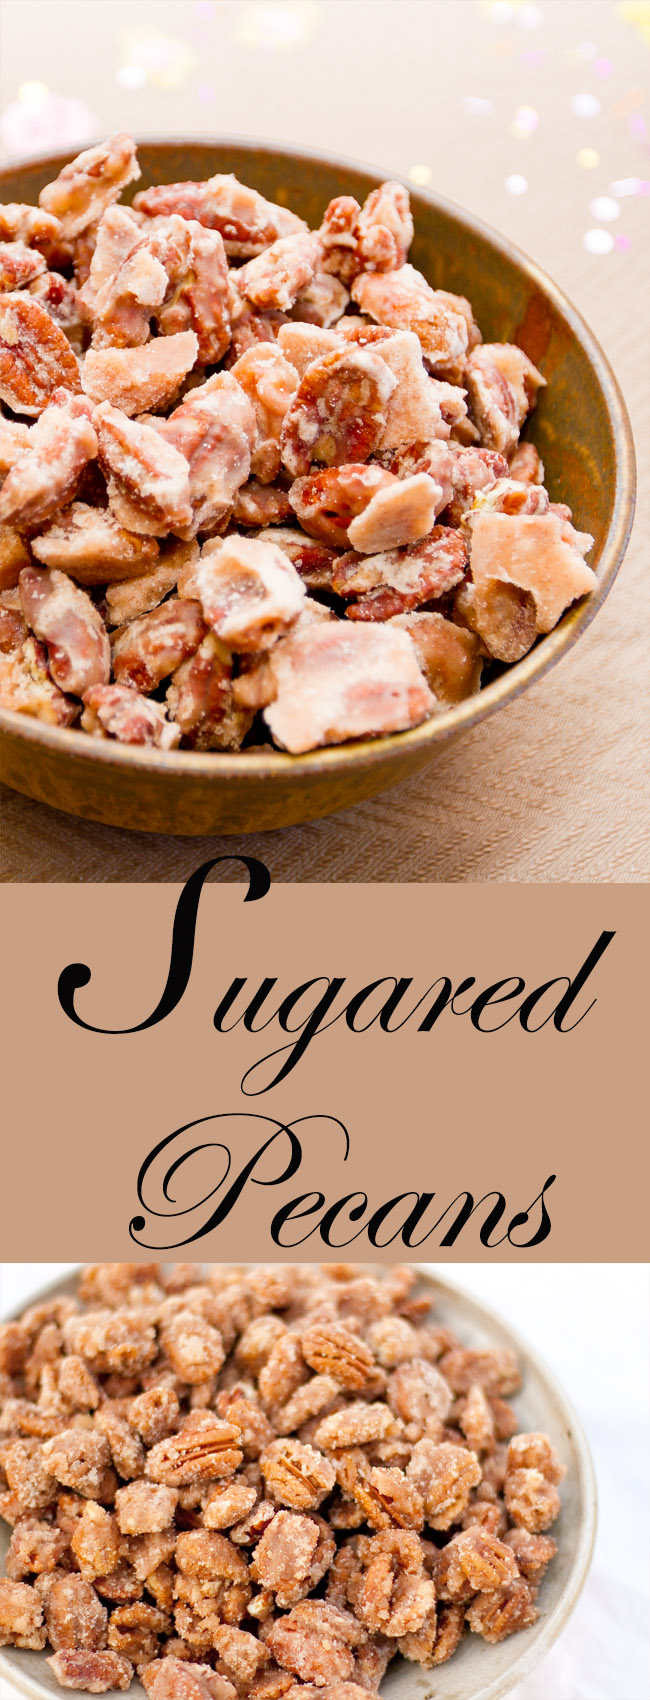 Tow images of sugared pecans plus title for Pinterest